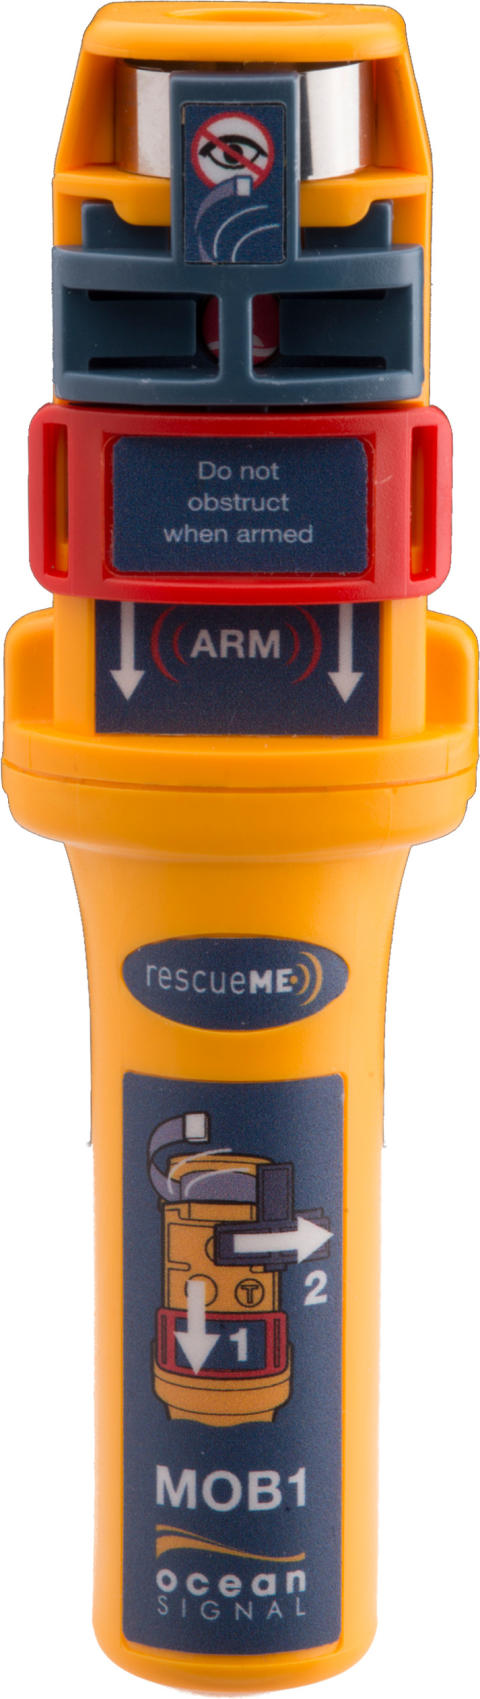 Hi-res image - Ocean Signal - Ocean Signal rescueME MOB1 man overboard device with integrated AIS and DSC